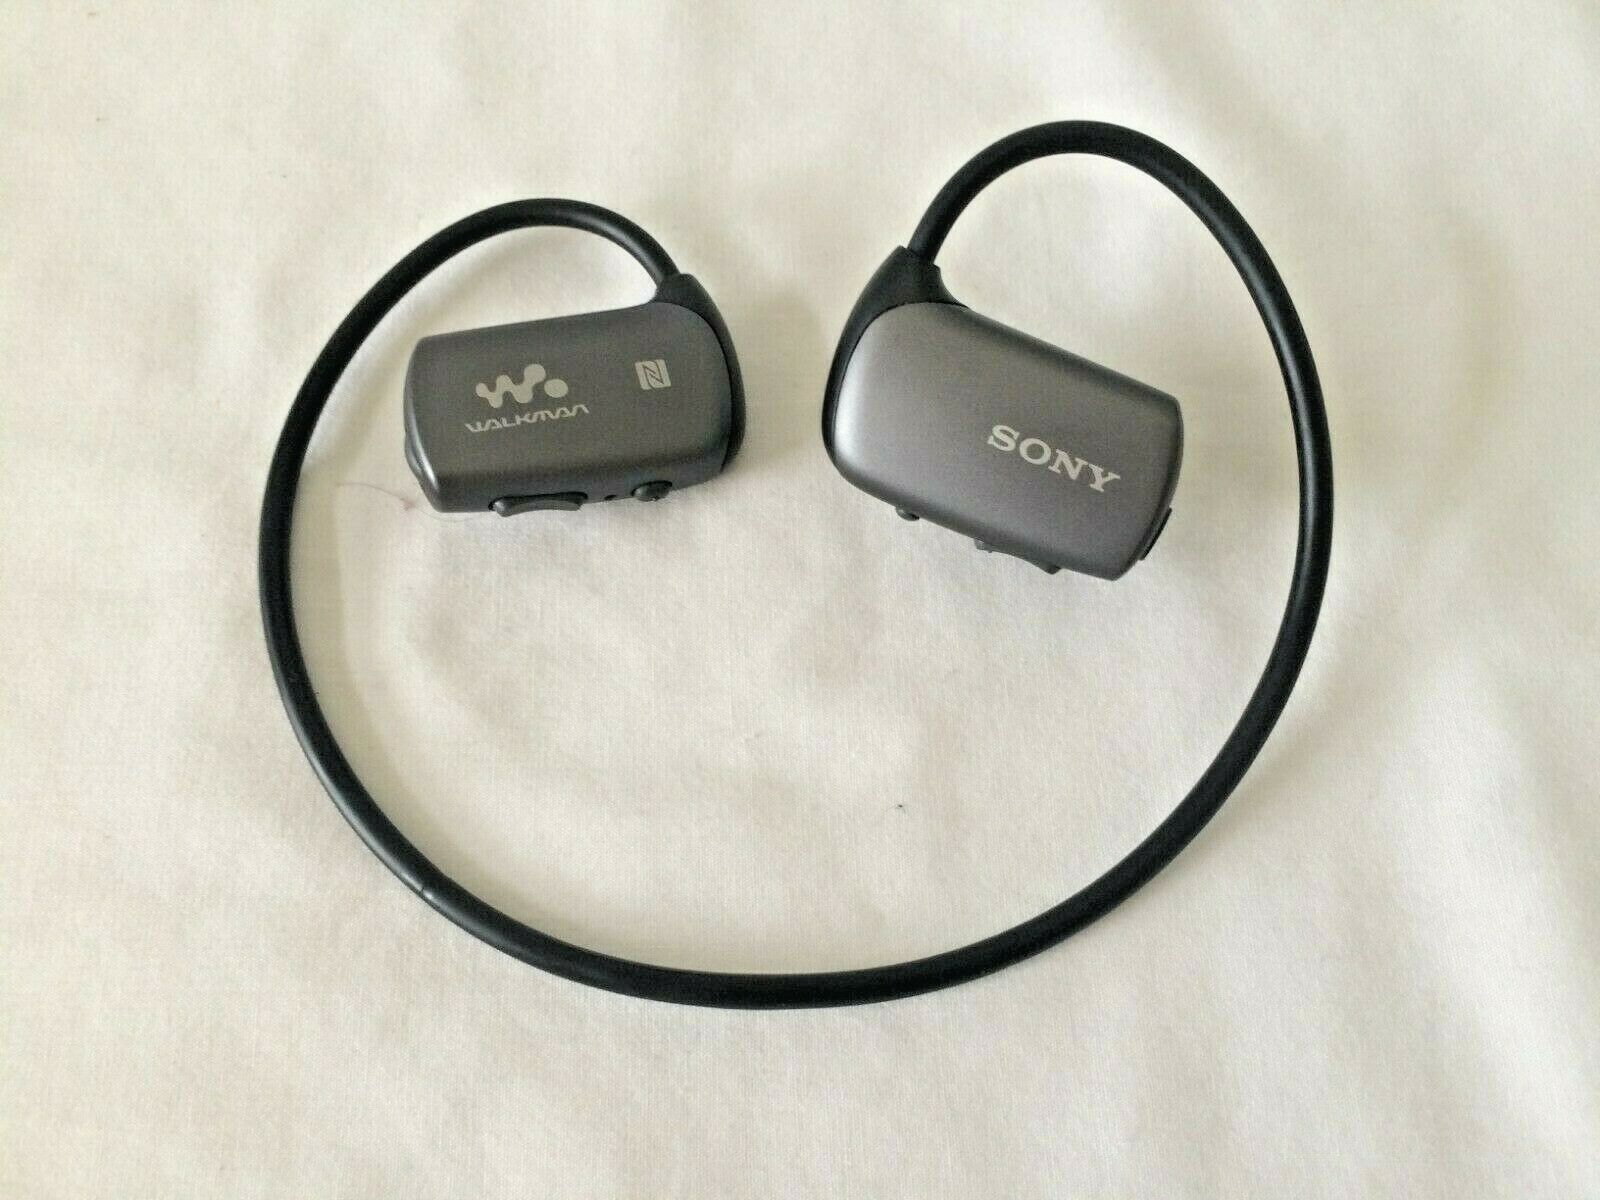 UPC 027242880177 - Sony 4 GB Bluetooth Sports Wearable MP3 Player